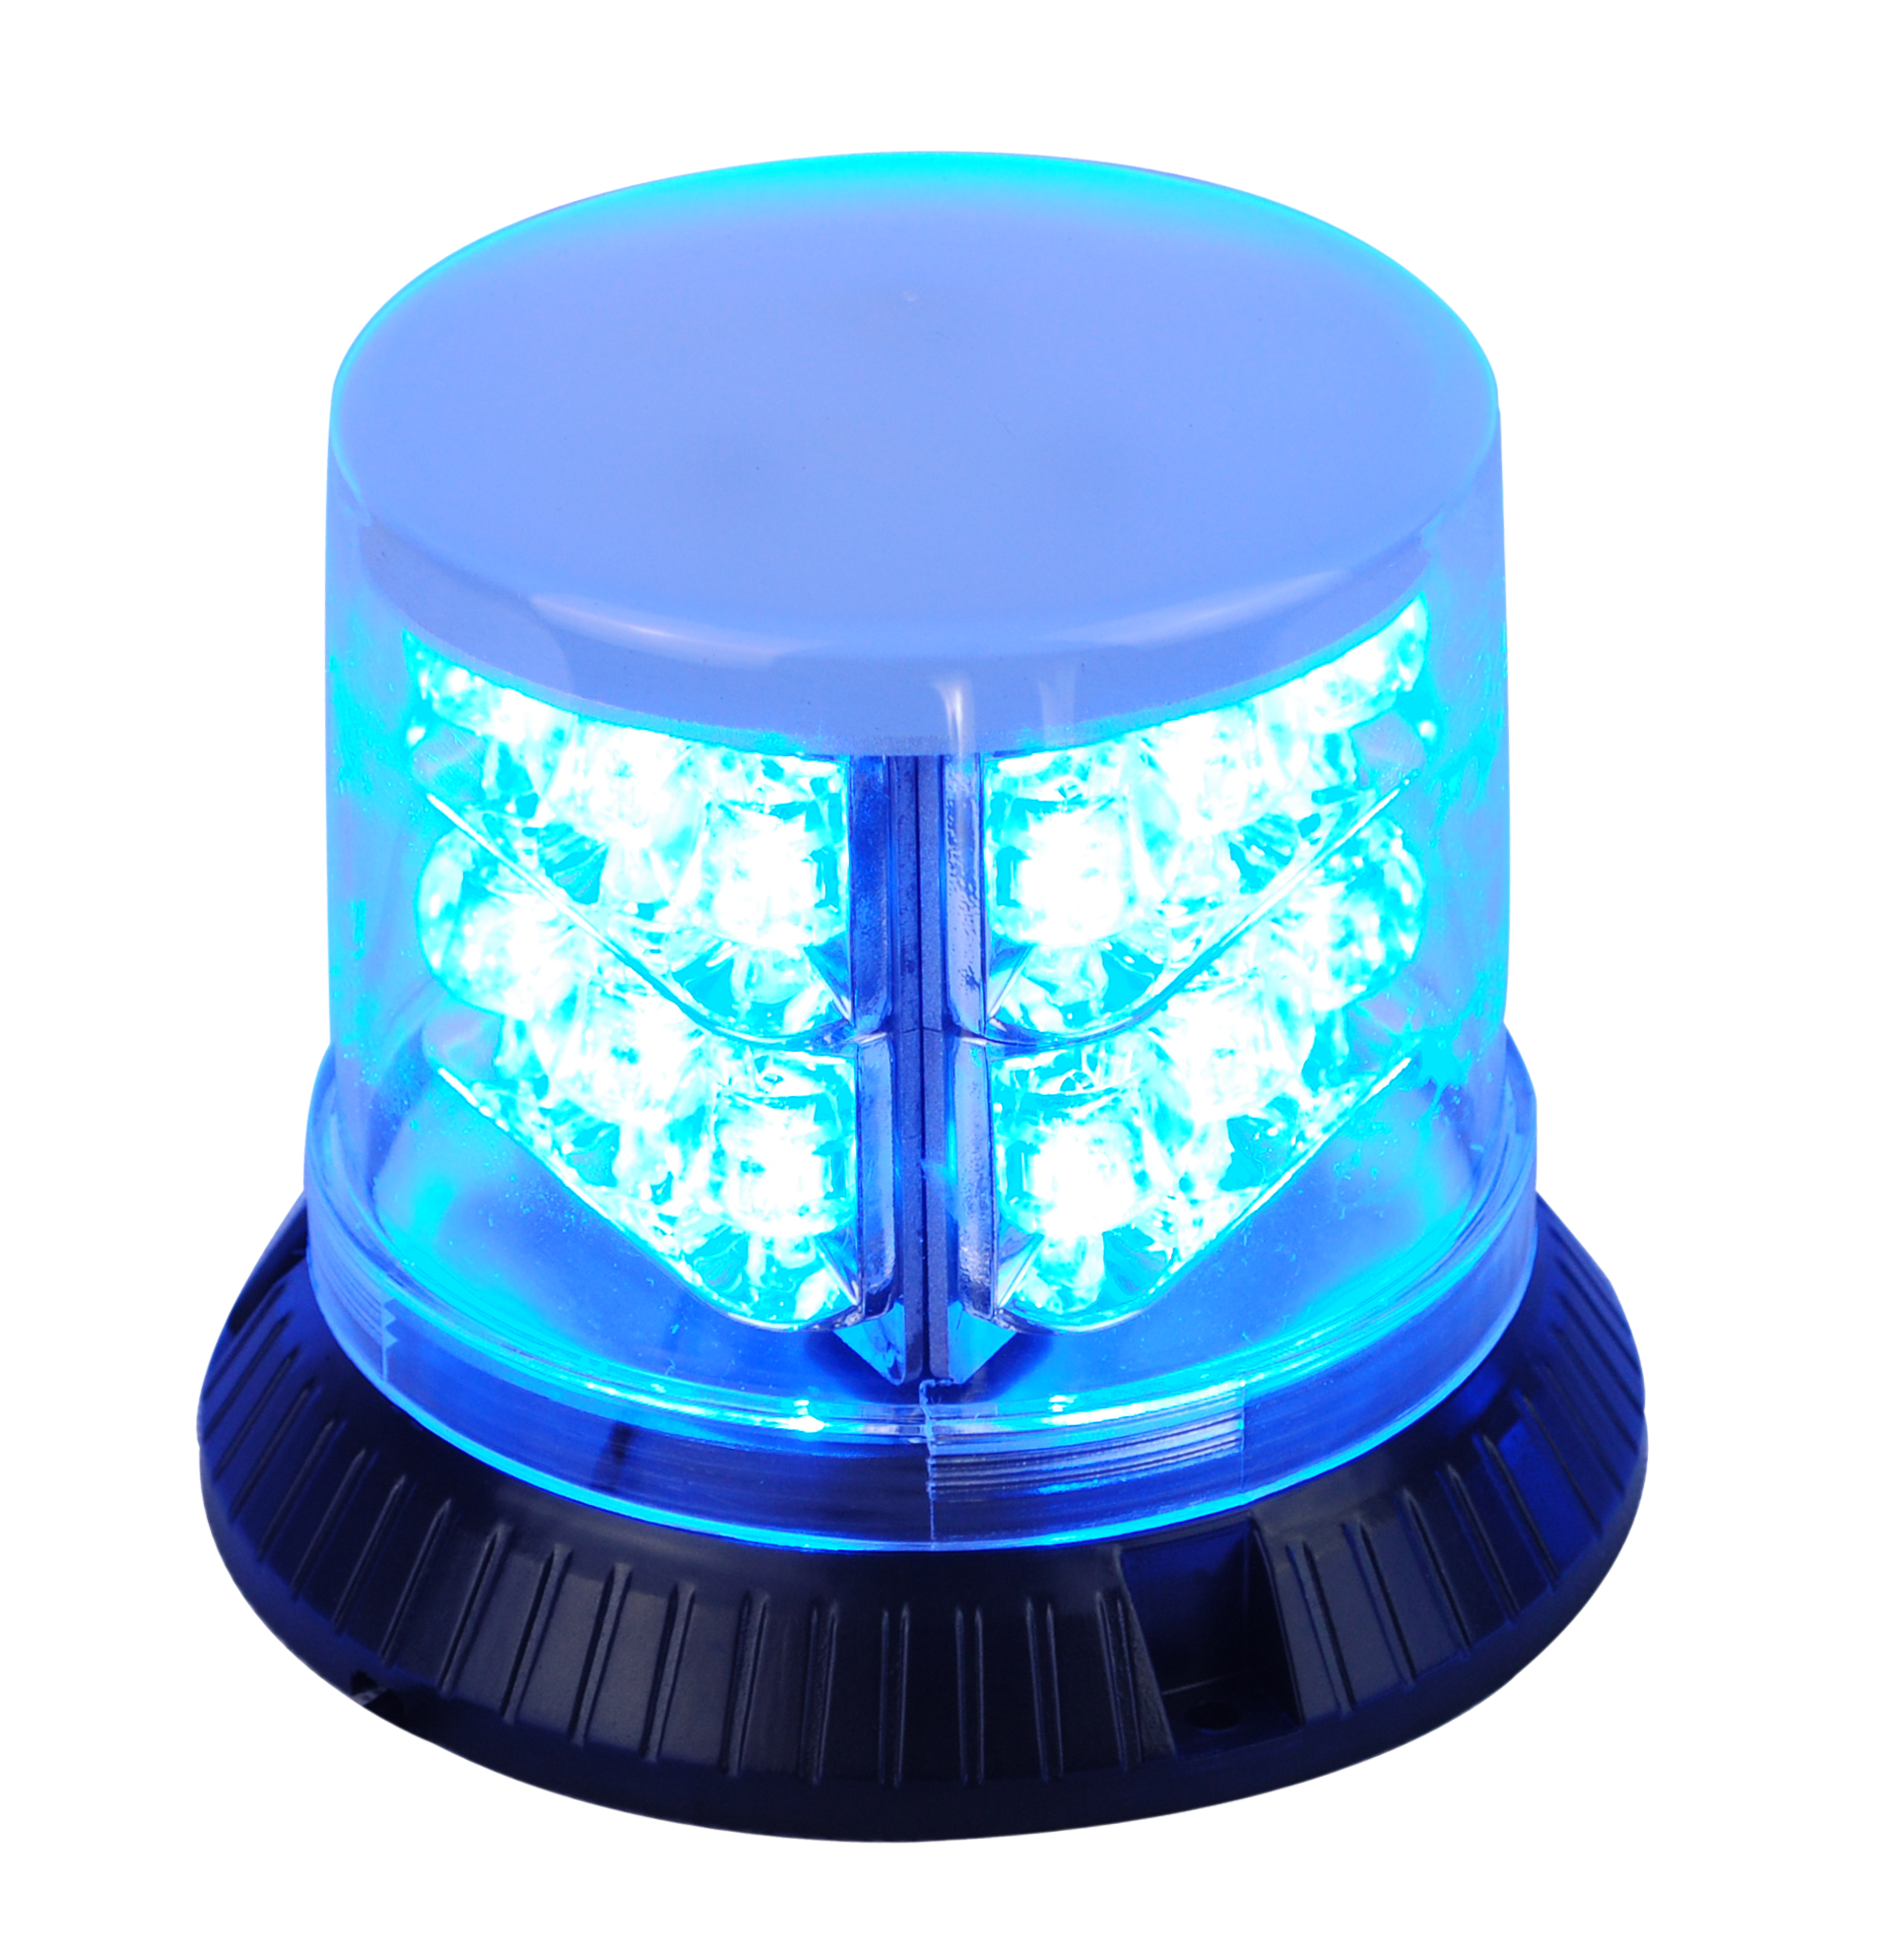 LED Mobil Polisi 27W Peringatan Beacon Light